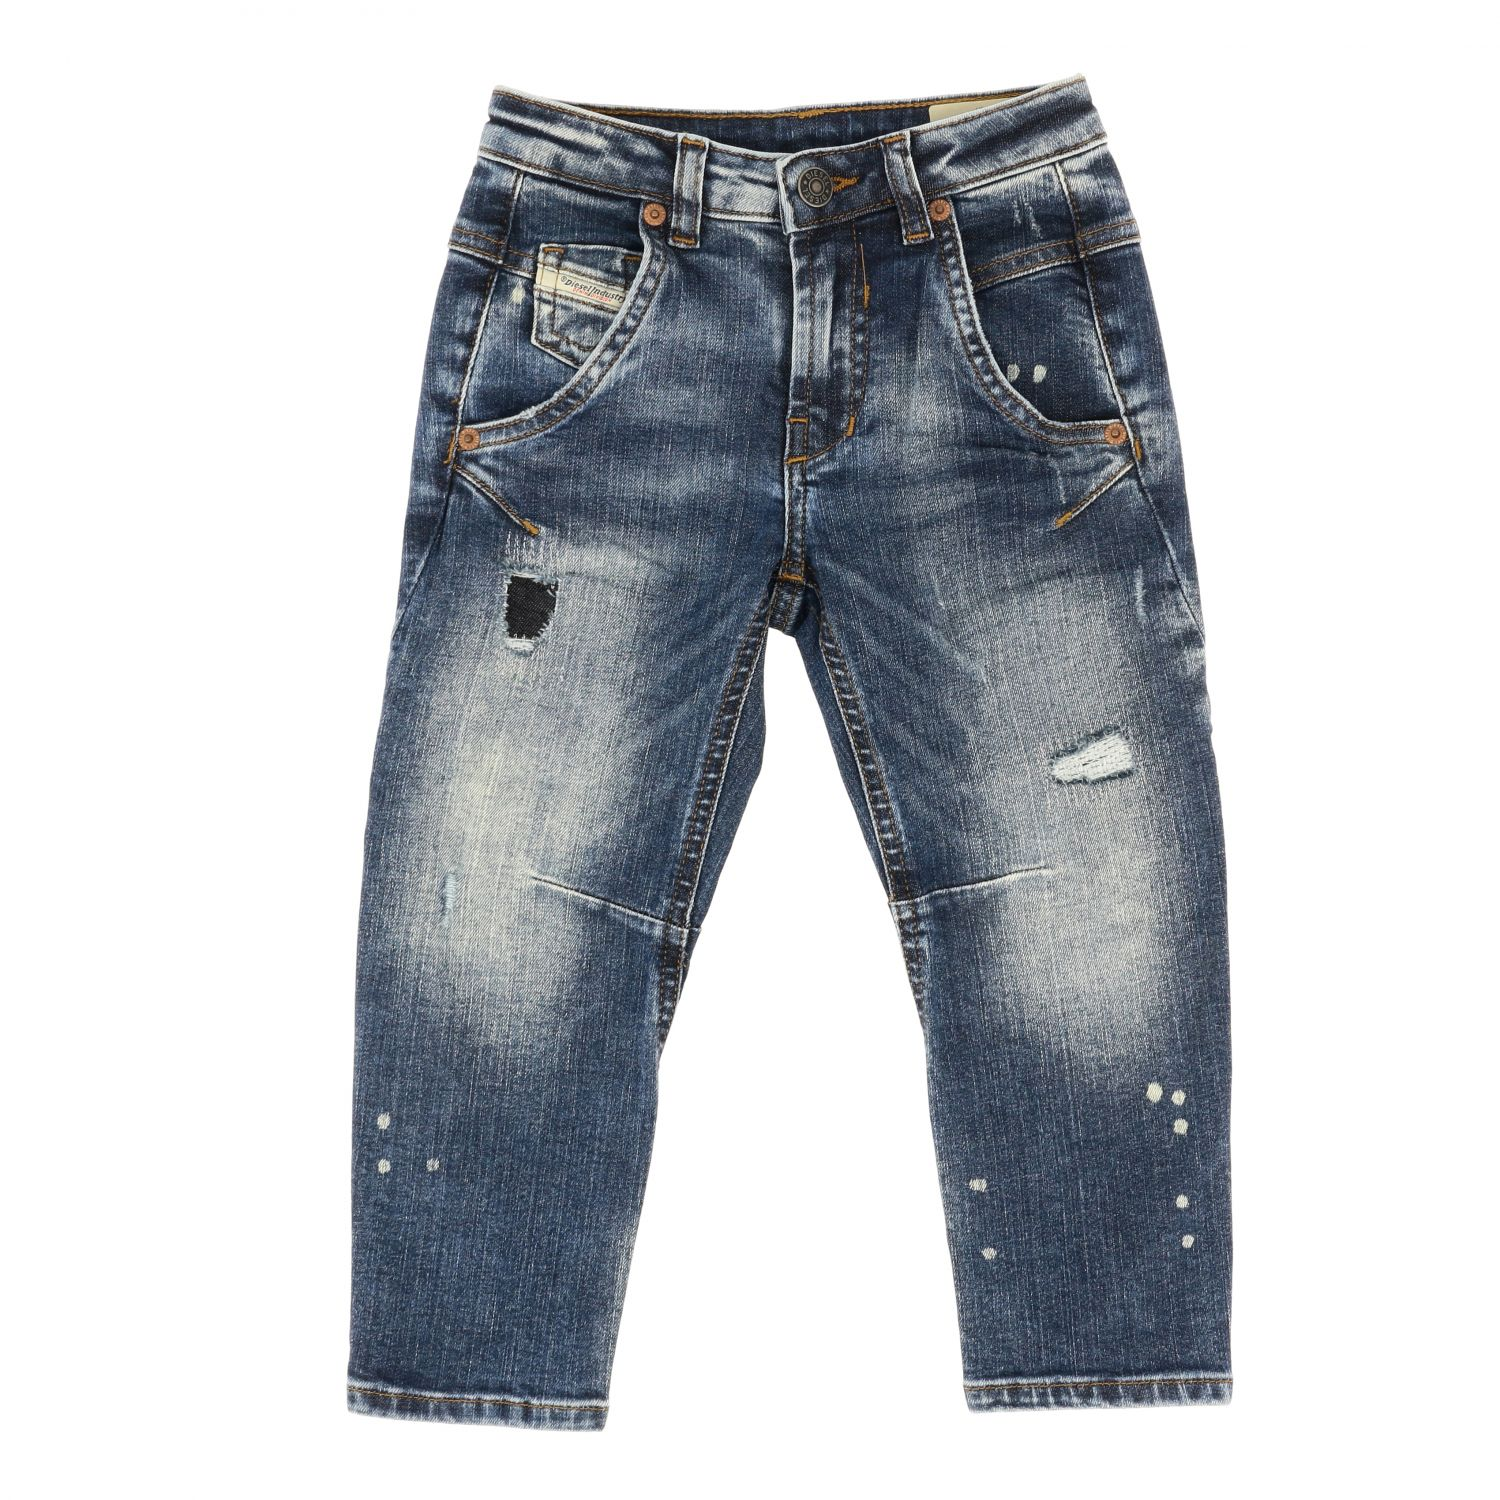 Diesel jeans in used denim with tears blue 1